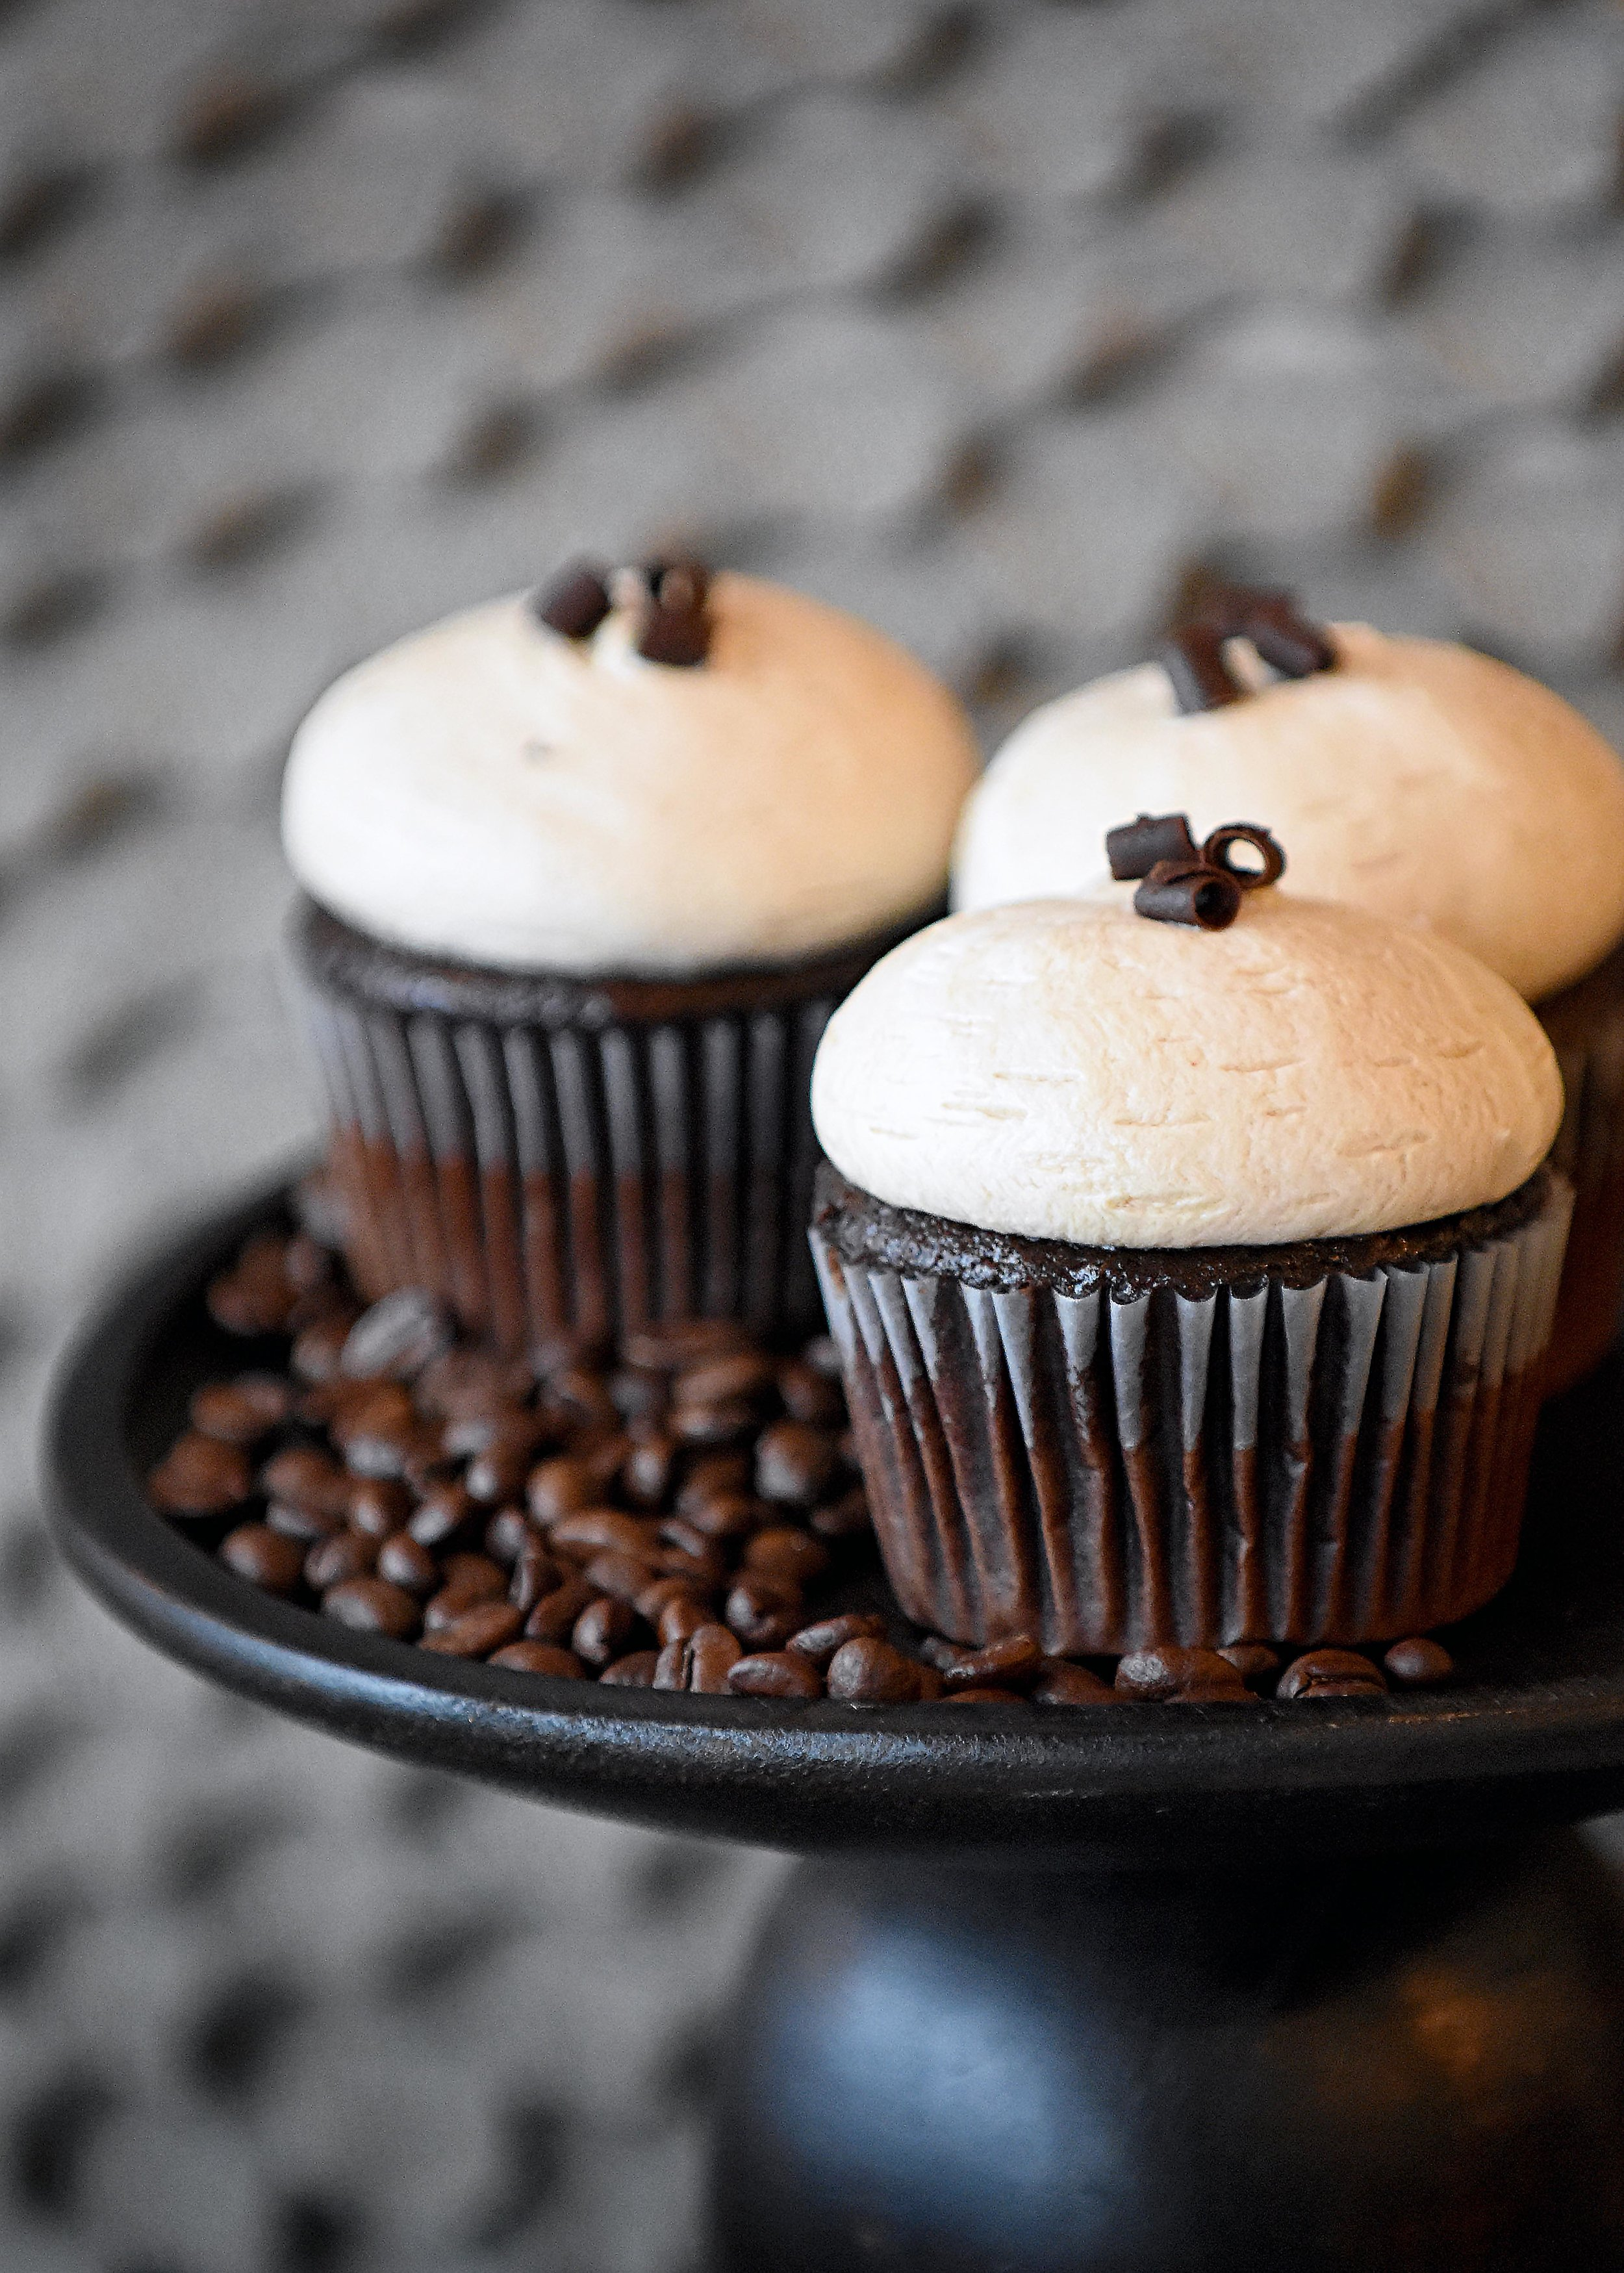 Mocha Buttercream Cupcake   2.95 each  Our All American Chocolate cupcake iced with a coffee buttercream blend. The perfect combination of coffee & chocolate in a cupcake!